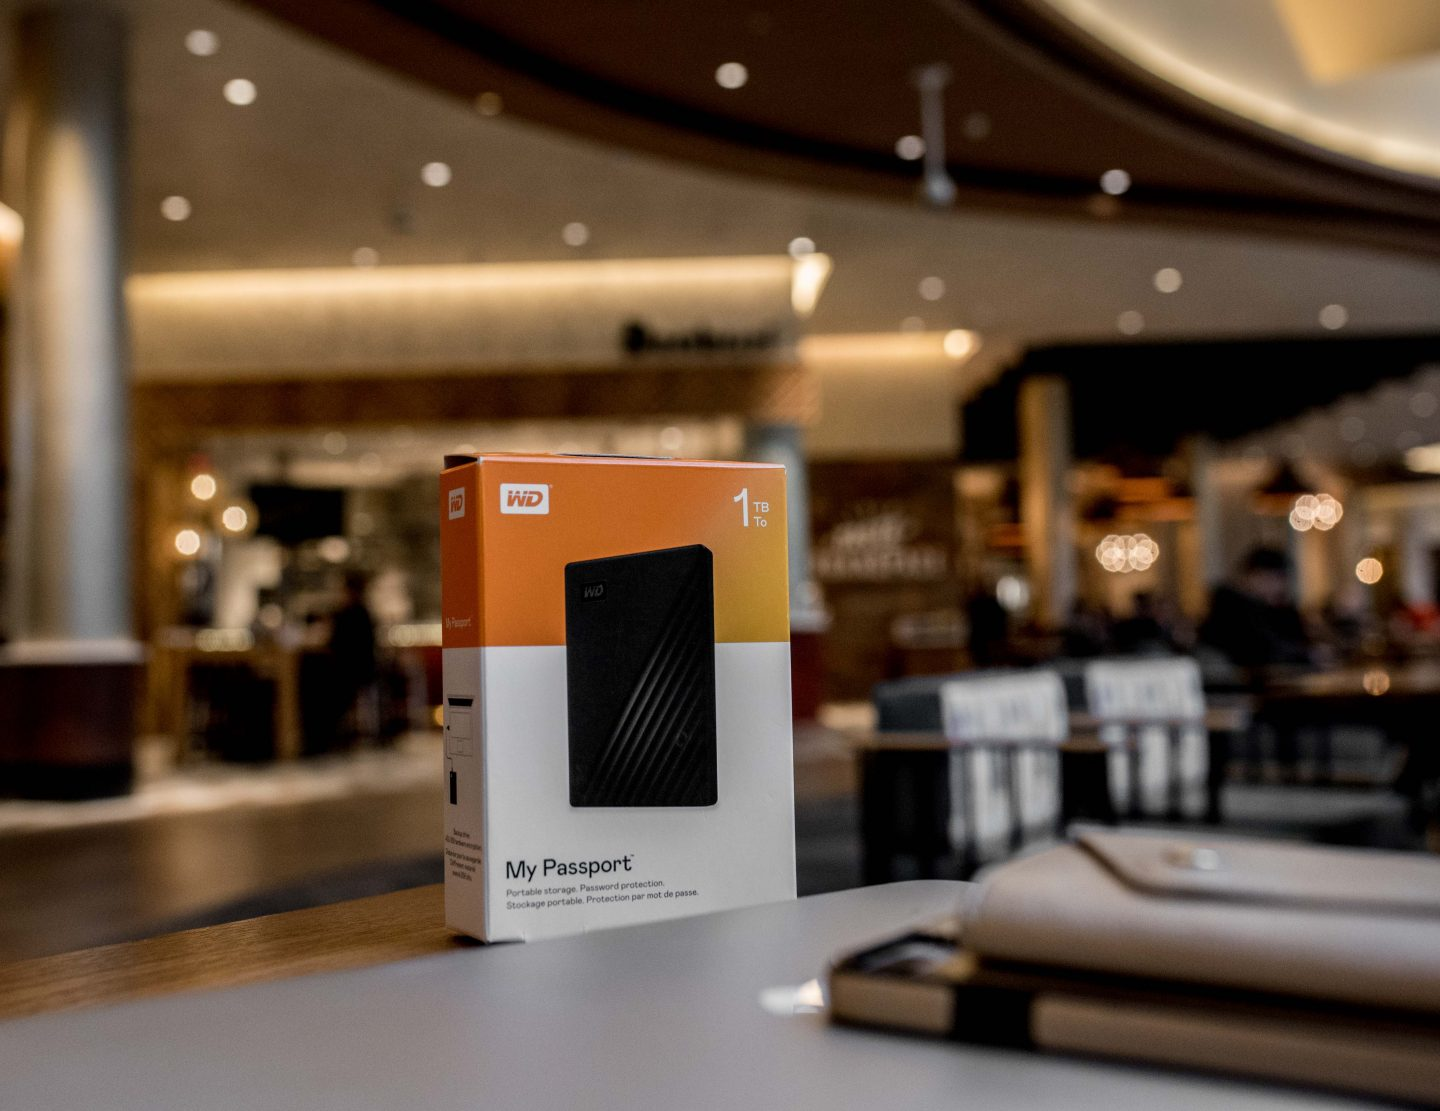 Western Digital's My Passport Drive